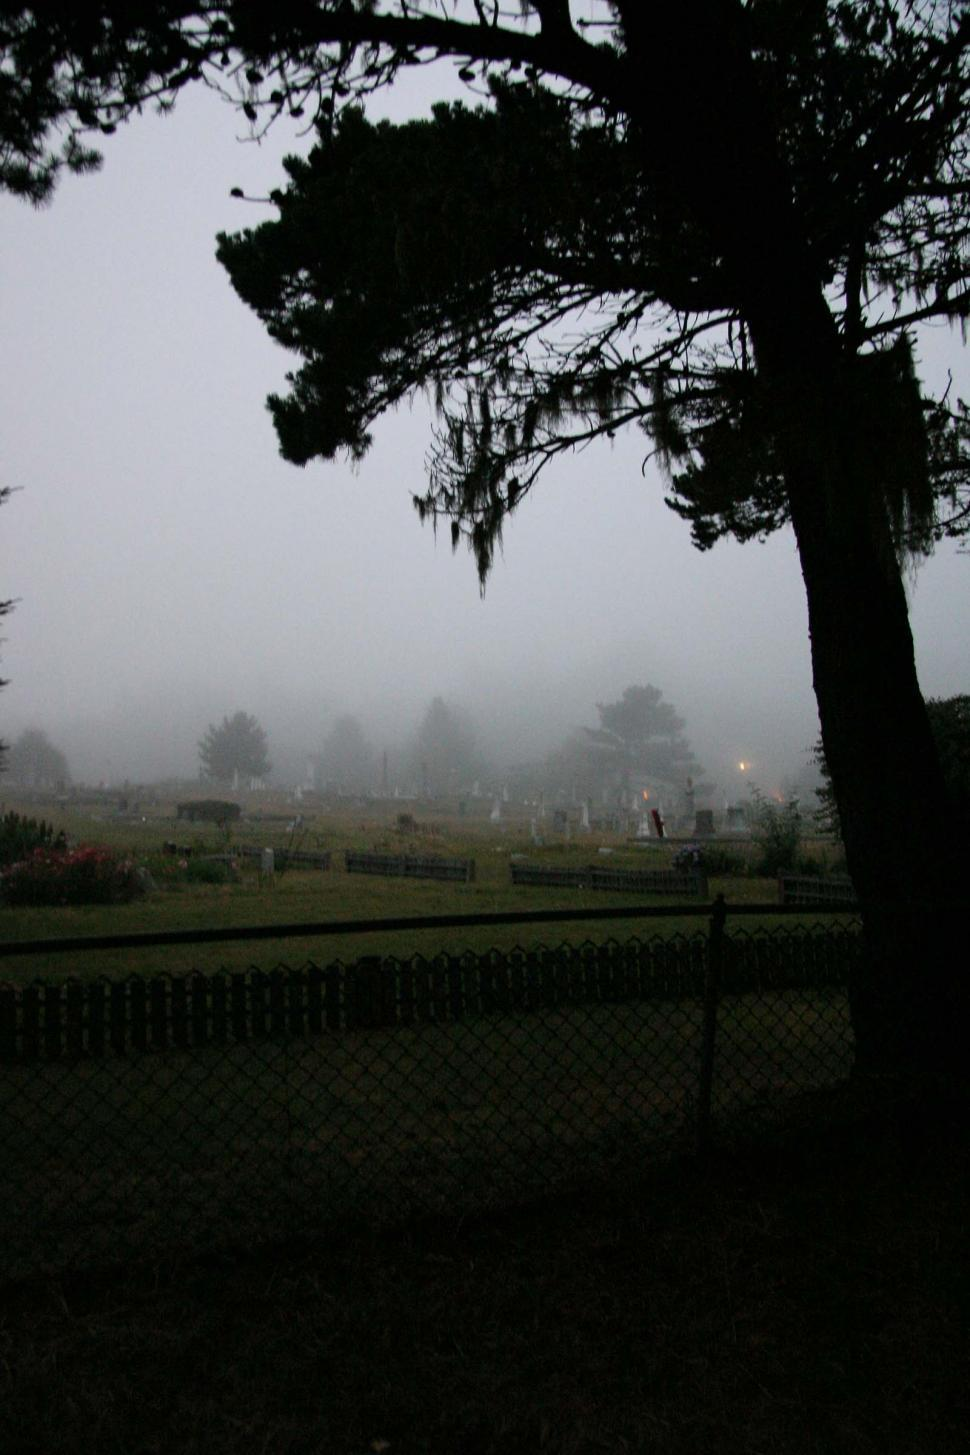 Download Free Stock Photo of Cemetery fog